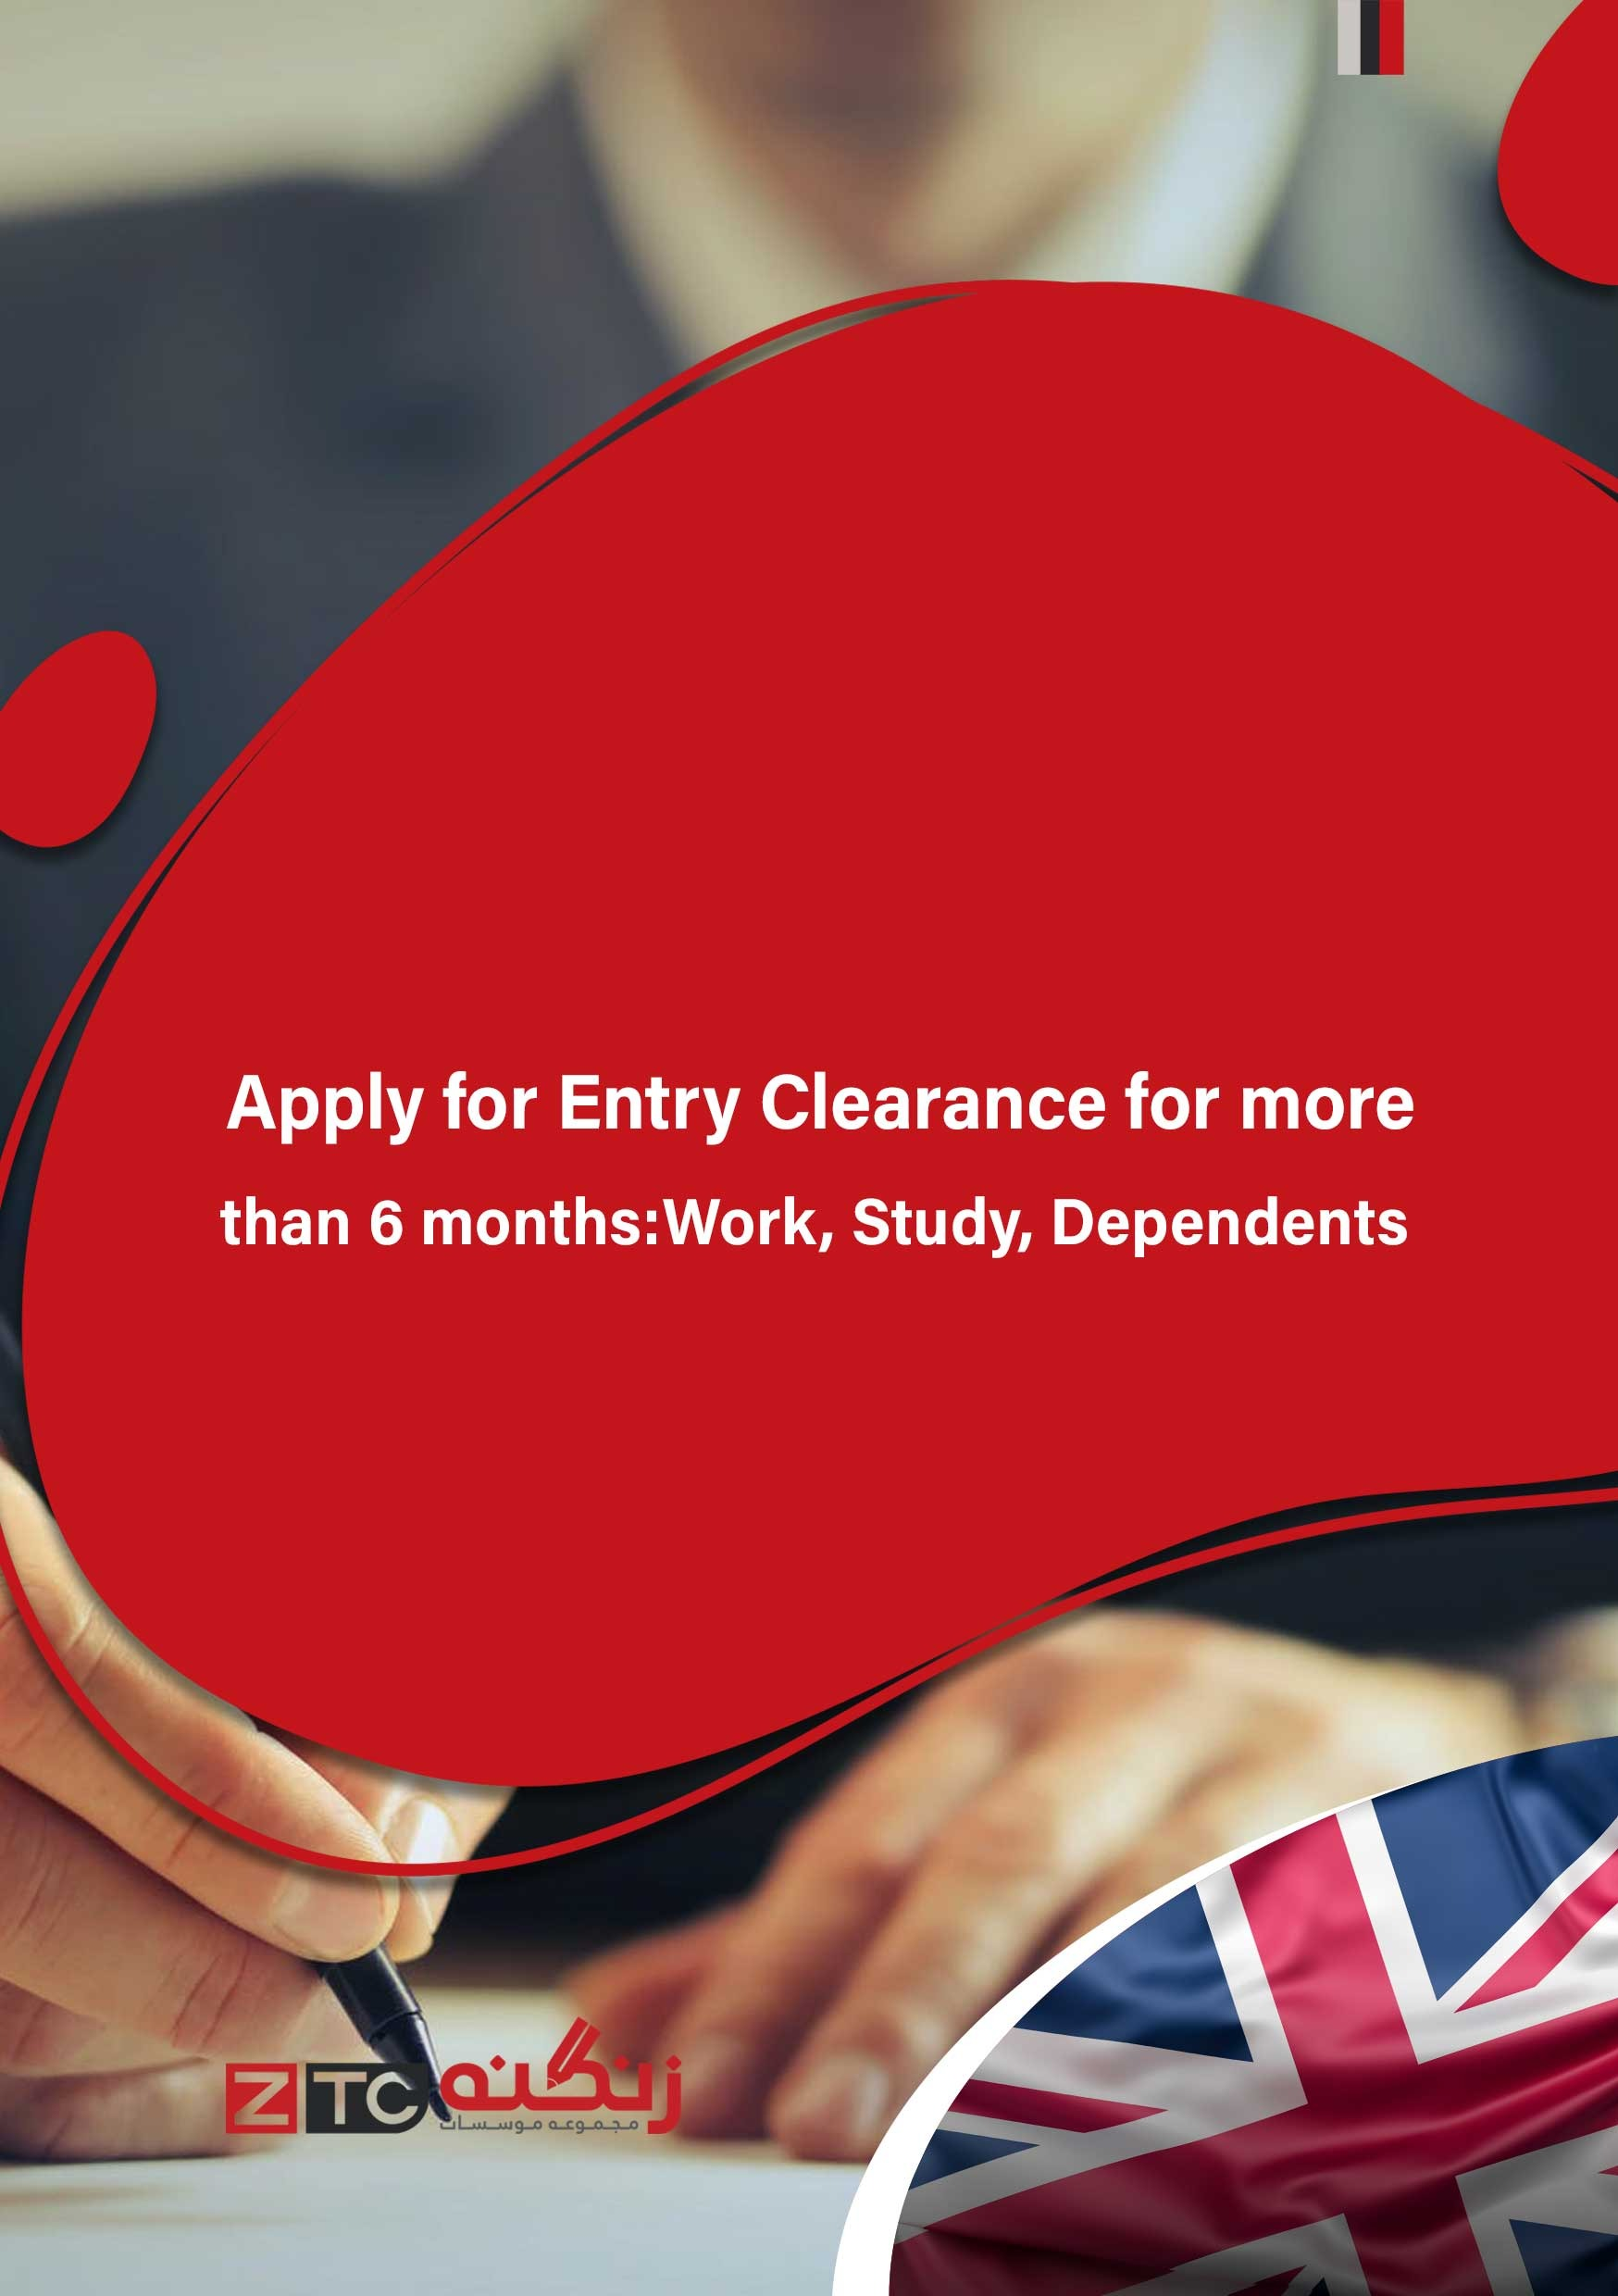 Apply for Entry Clearance for more than 6 months - Work, Study, Dependents